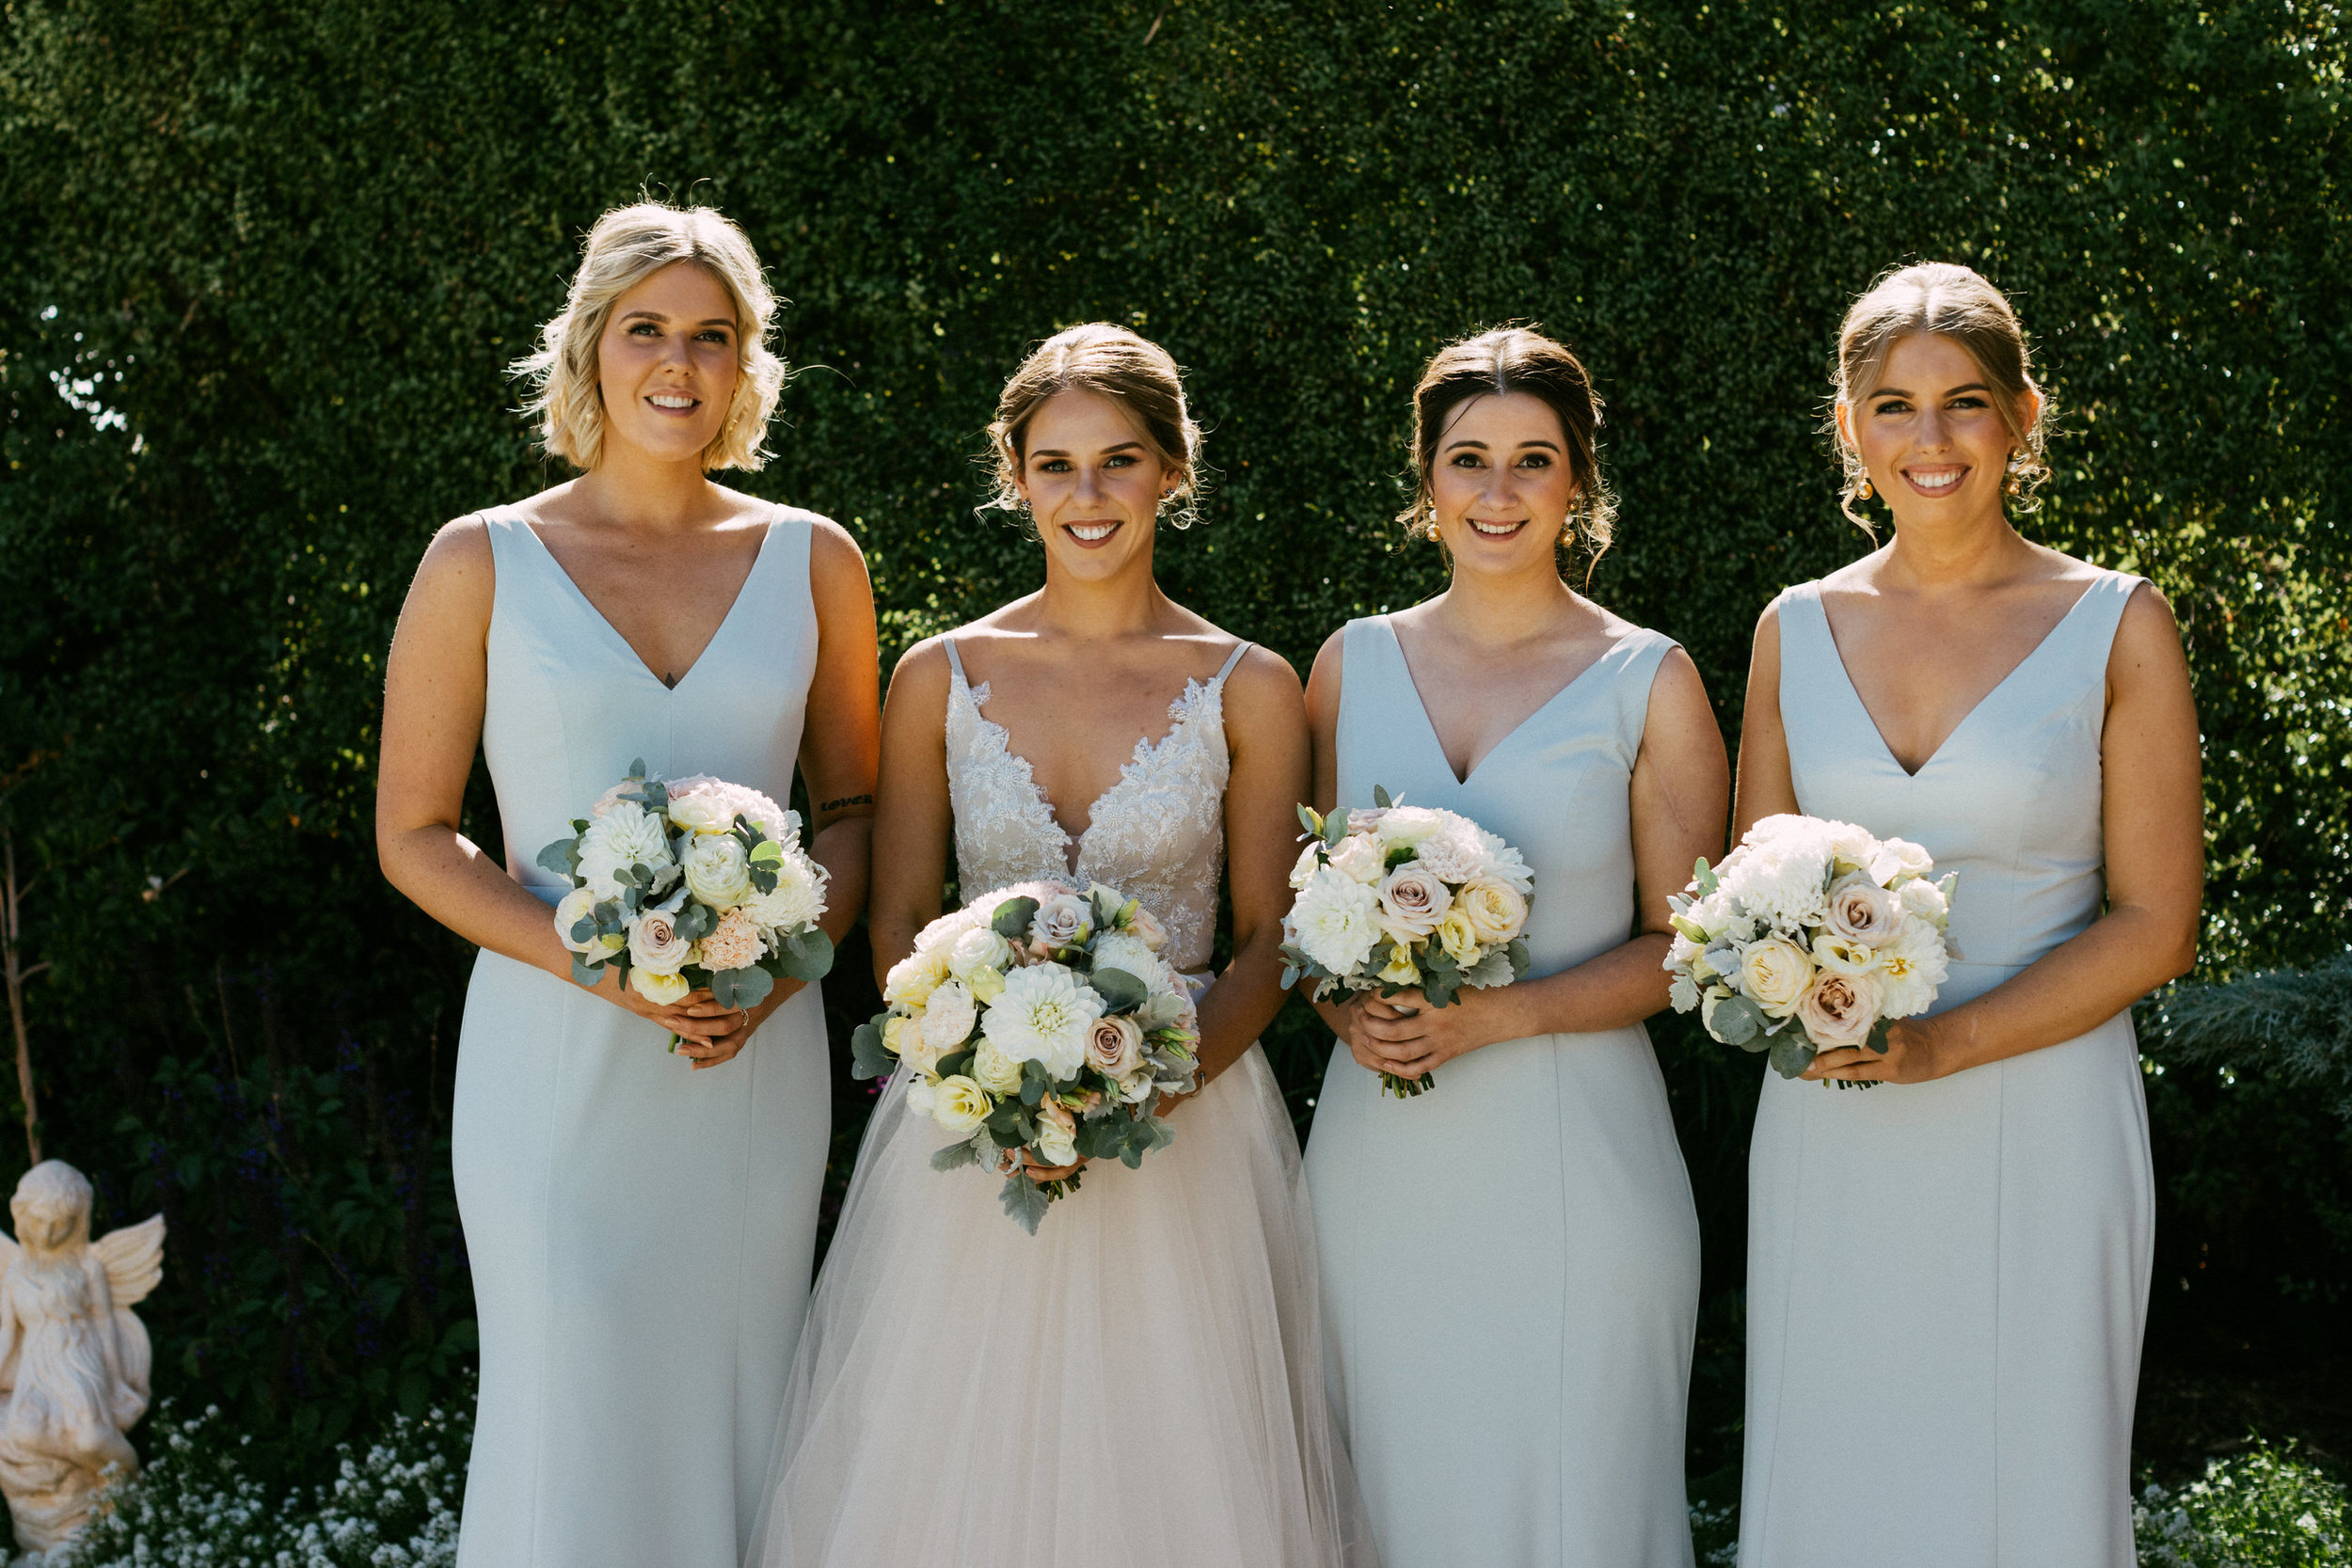 Adelaide Wedding 2019 043.jpg